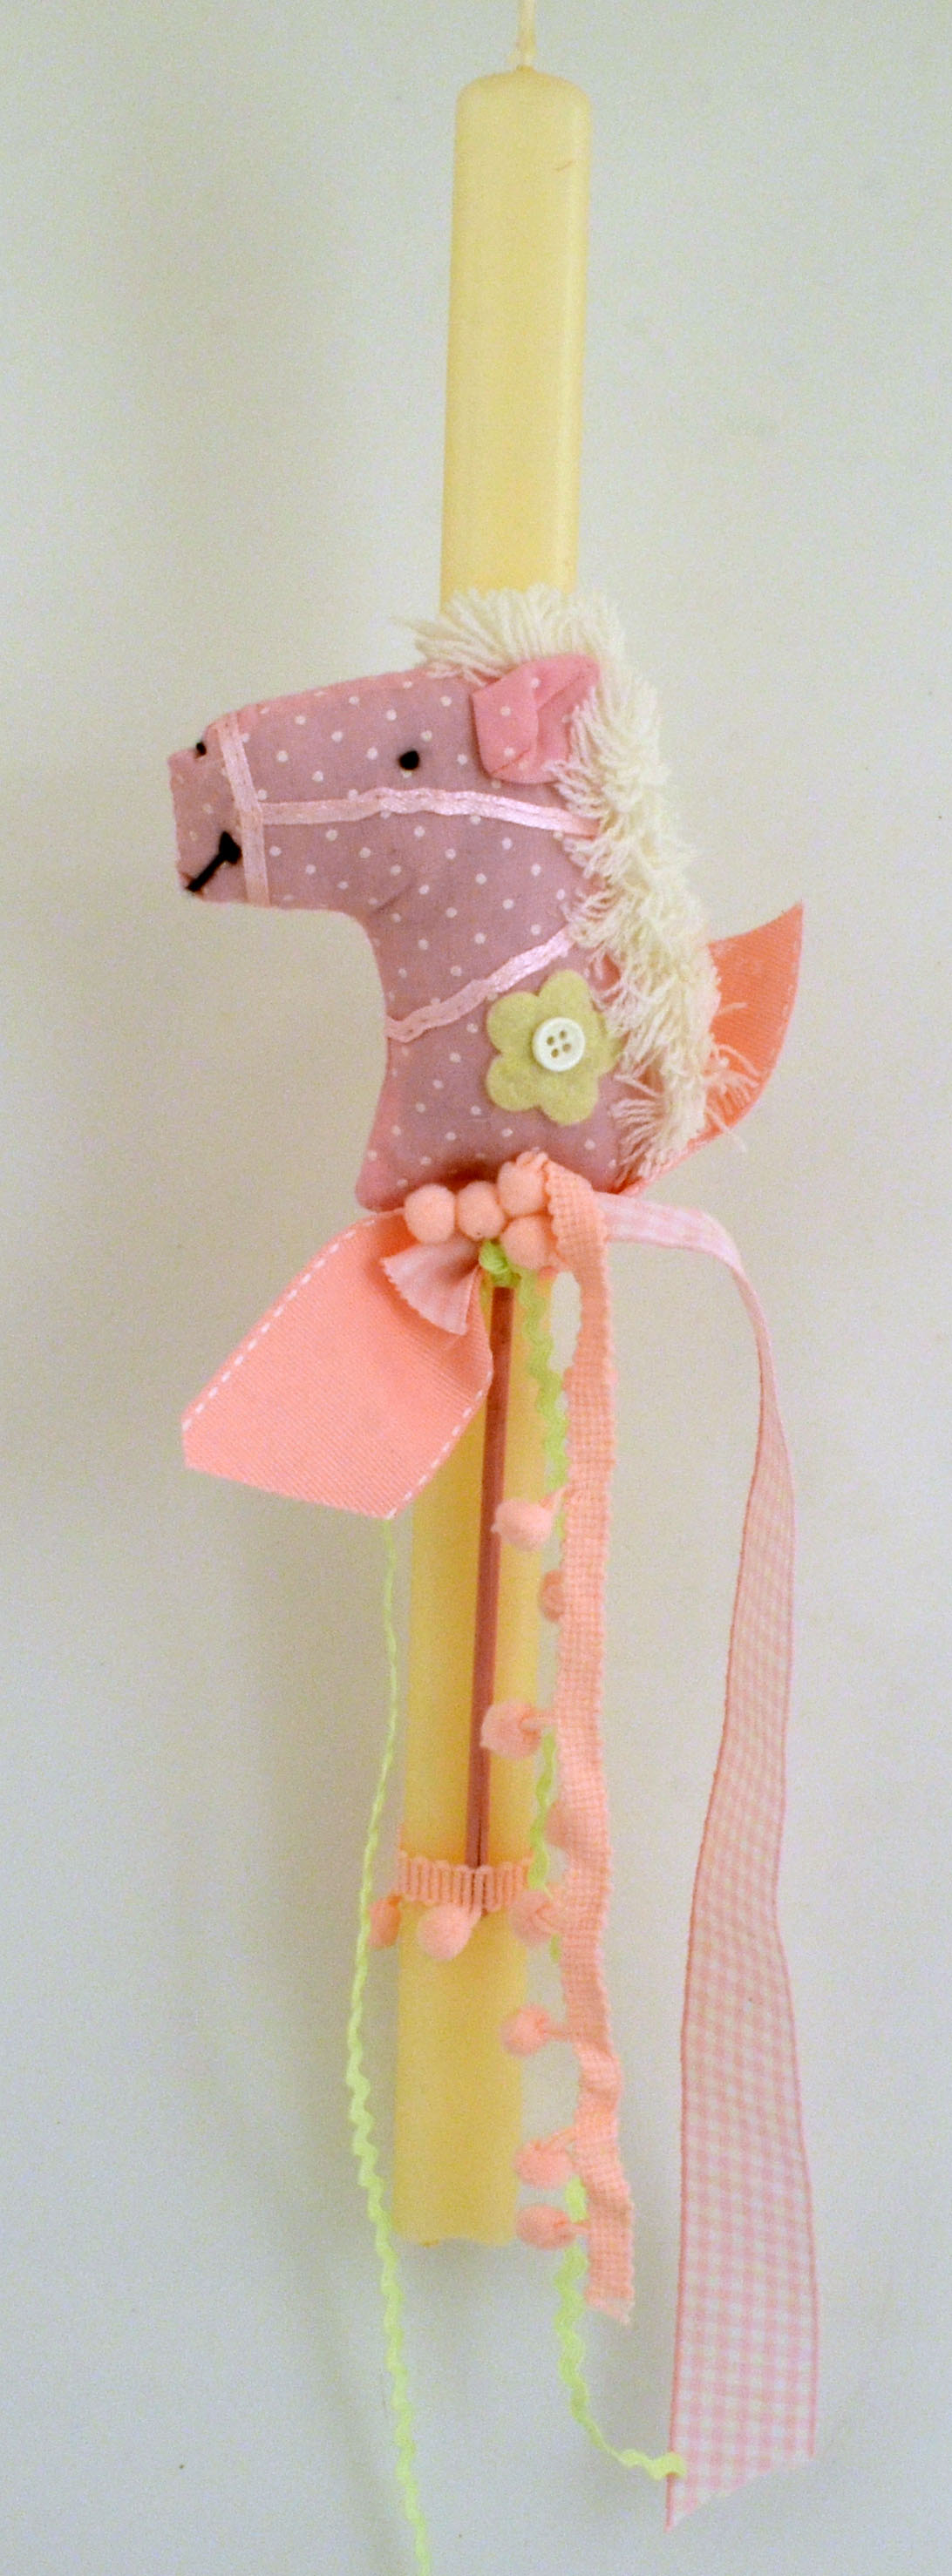 Easter Lampada Candle Kids with Toy Fabric Horse 40cm